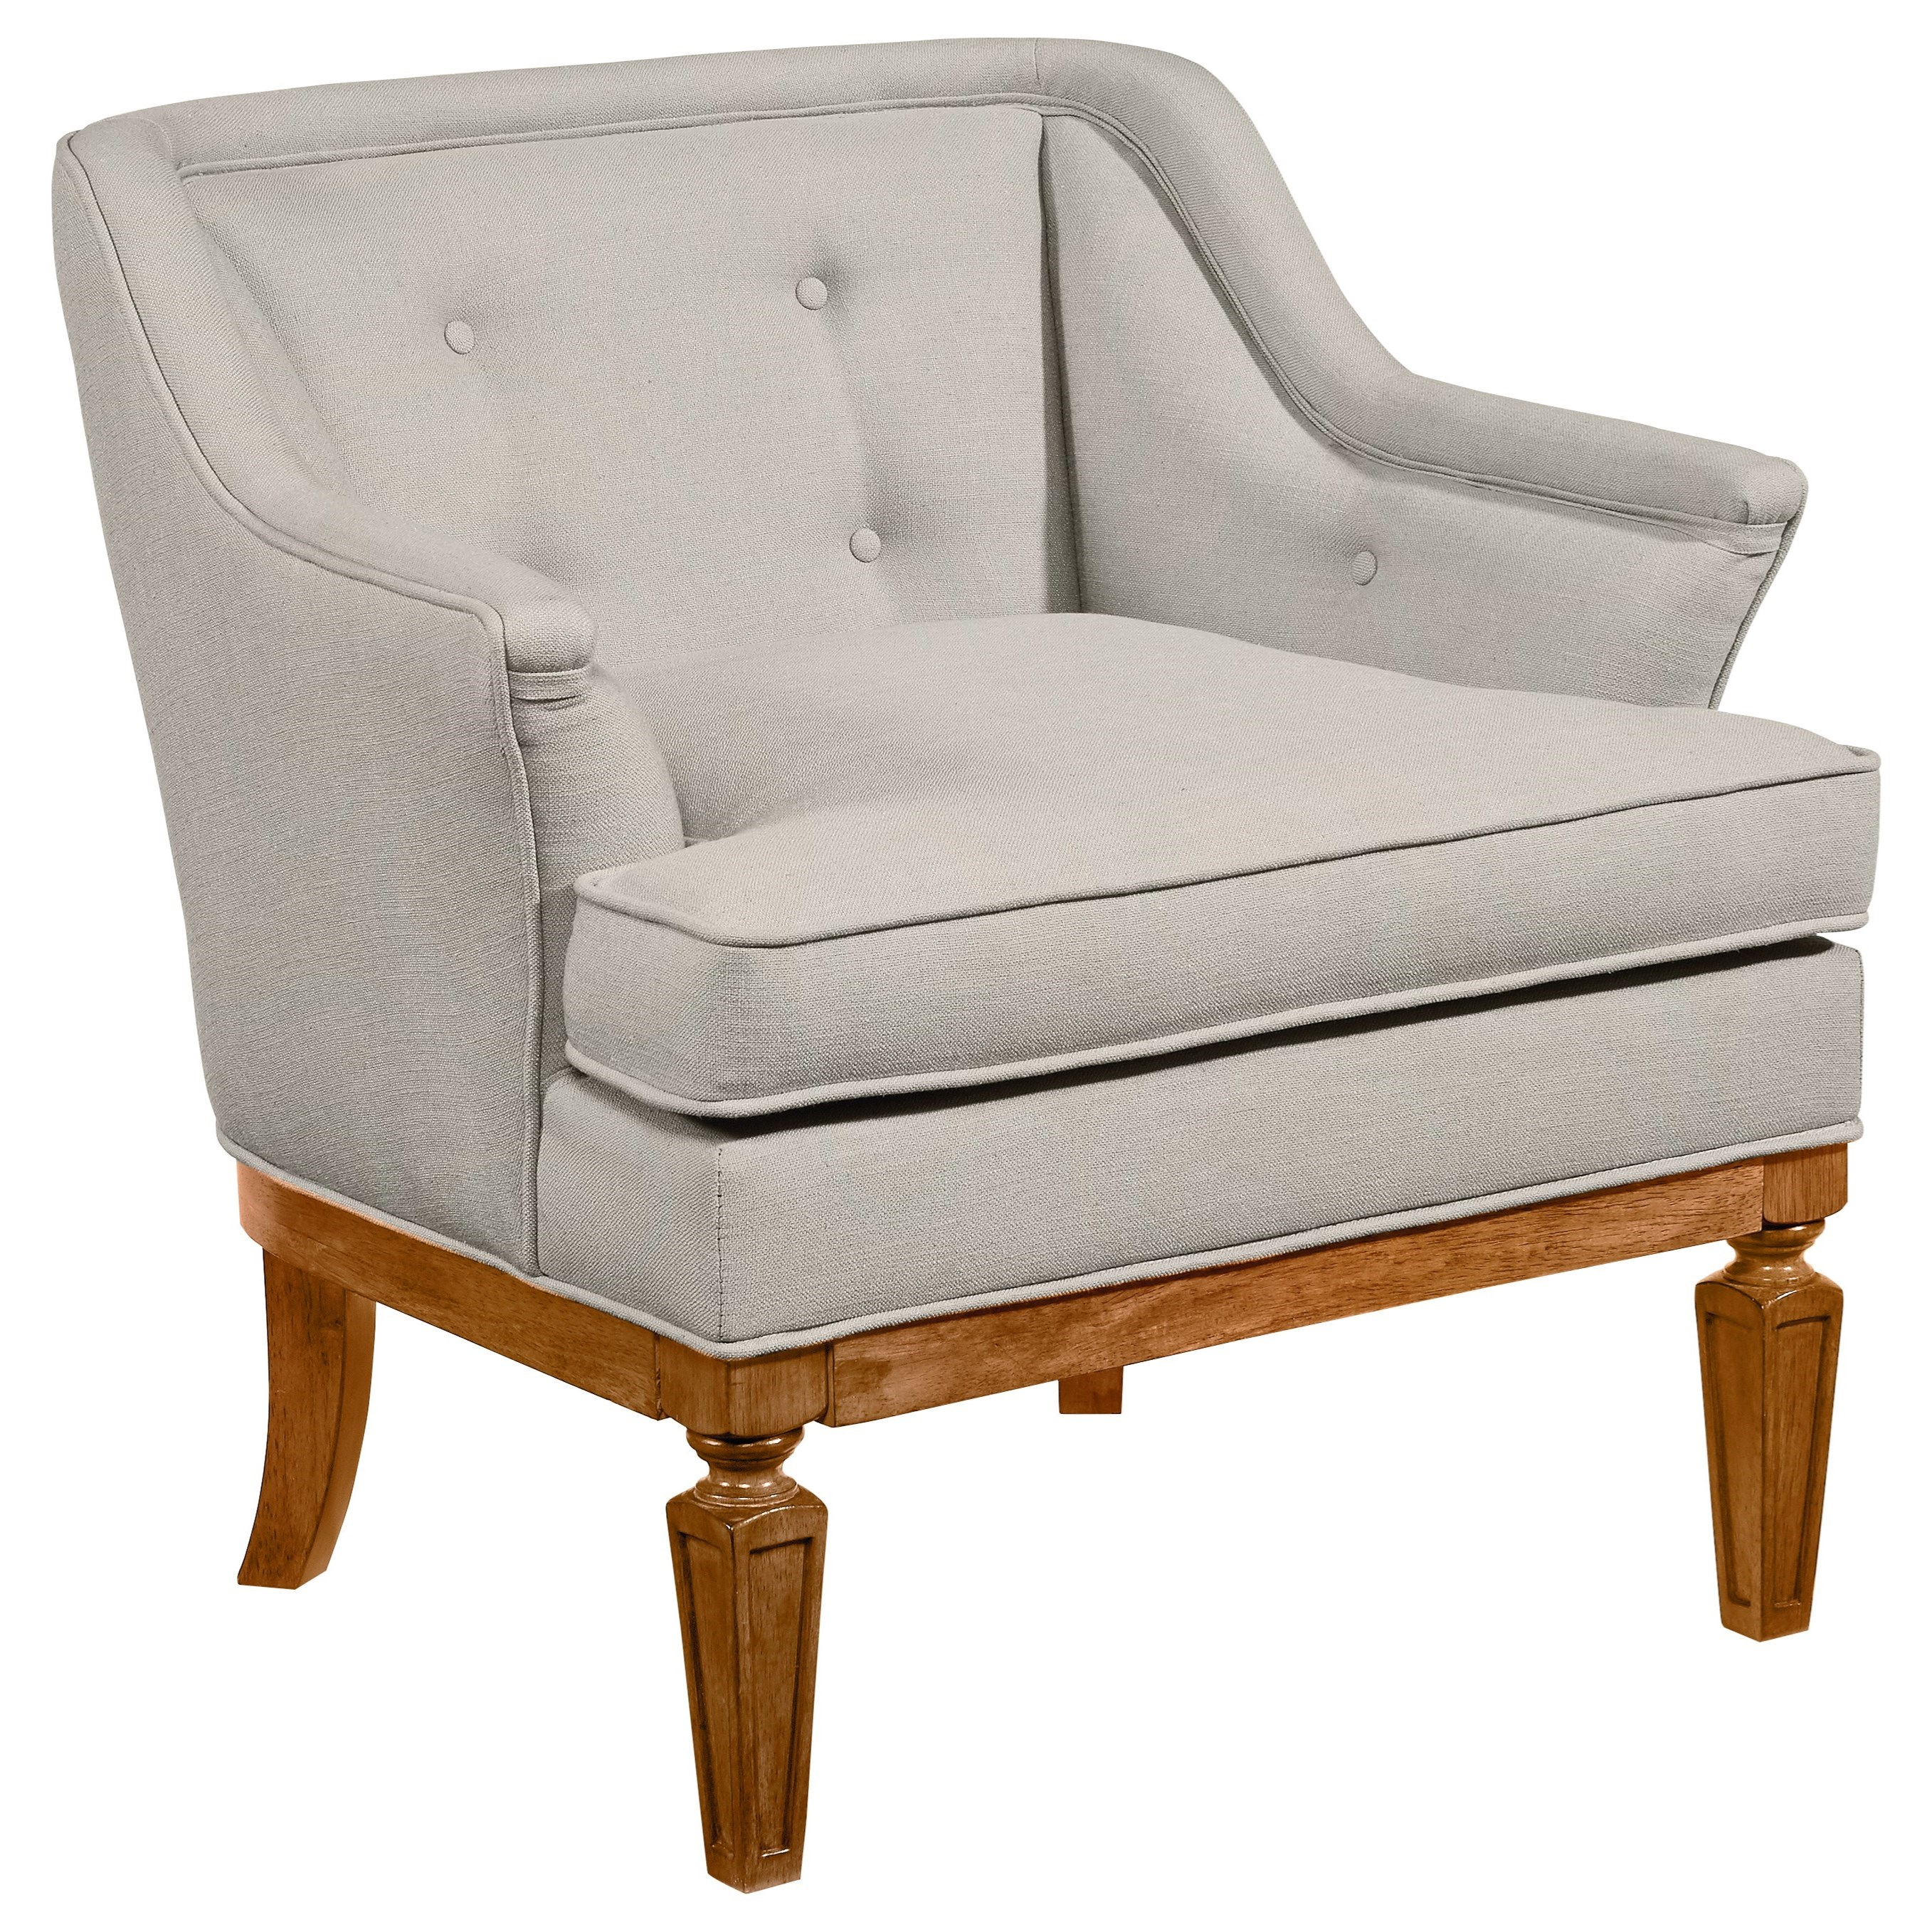 beumont itm accent chair ebay den porch woodlawn square upholstered fountain chairs back round